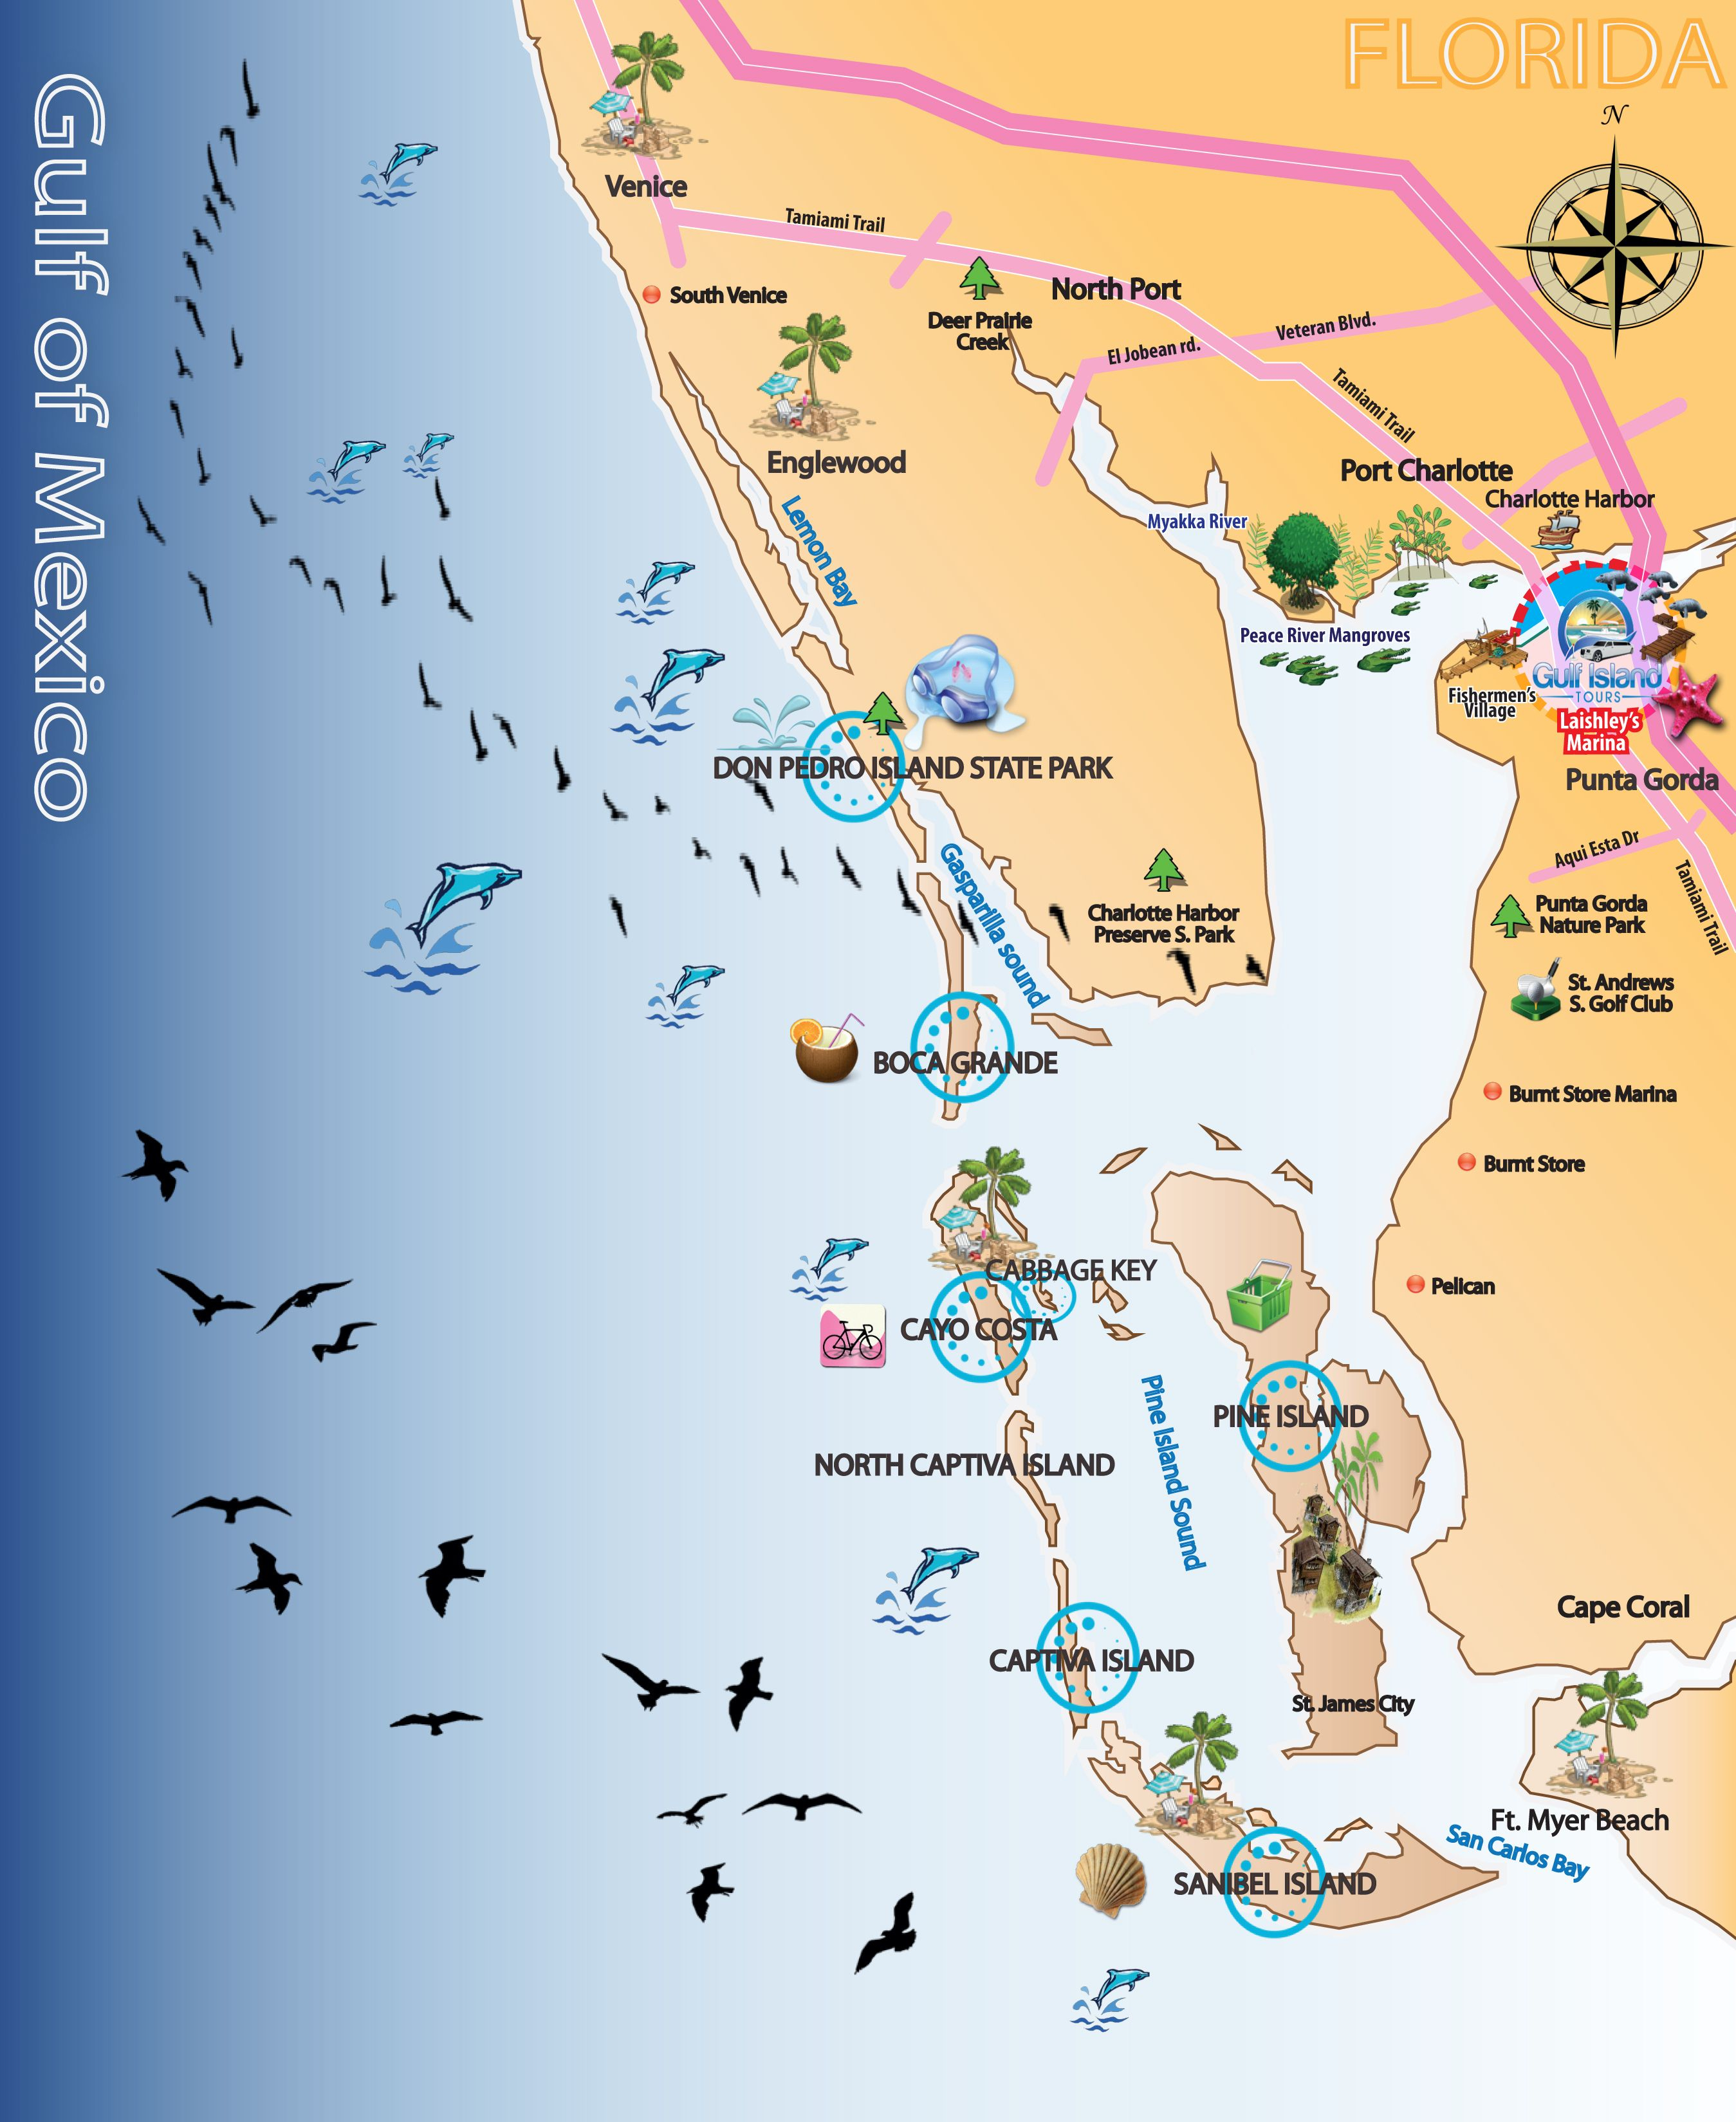 Map Out Your Next Vacation In The Florida Gulf! | Gulf Island Tours - Florida Vacation Destinations Map